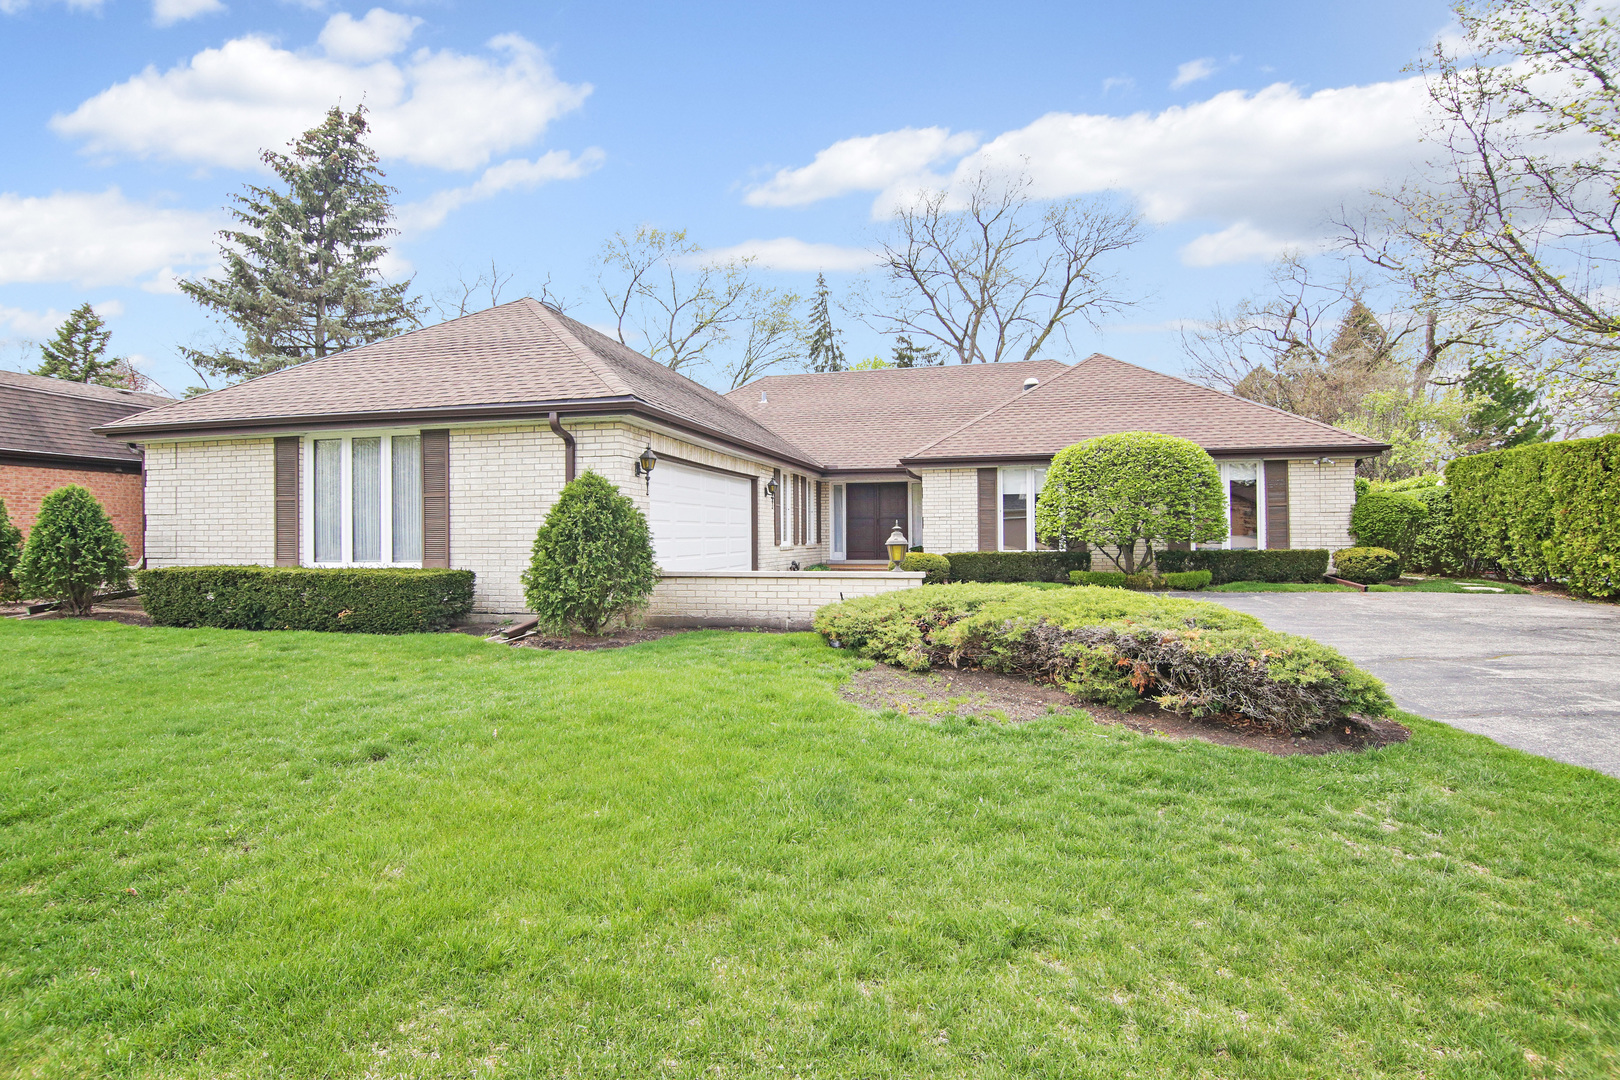 2520 Queens Way, Northbrook in Cook County, IL 60062 Home for Sale